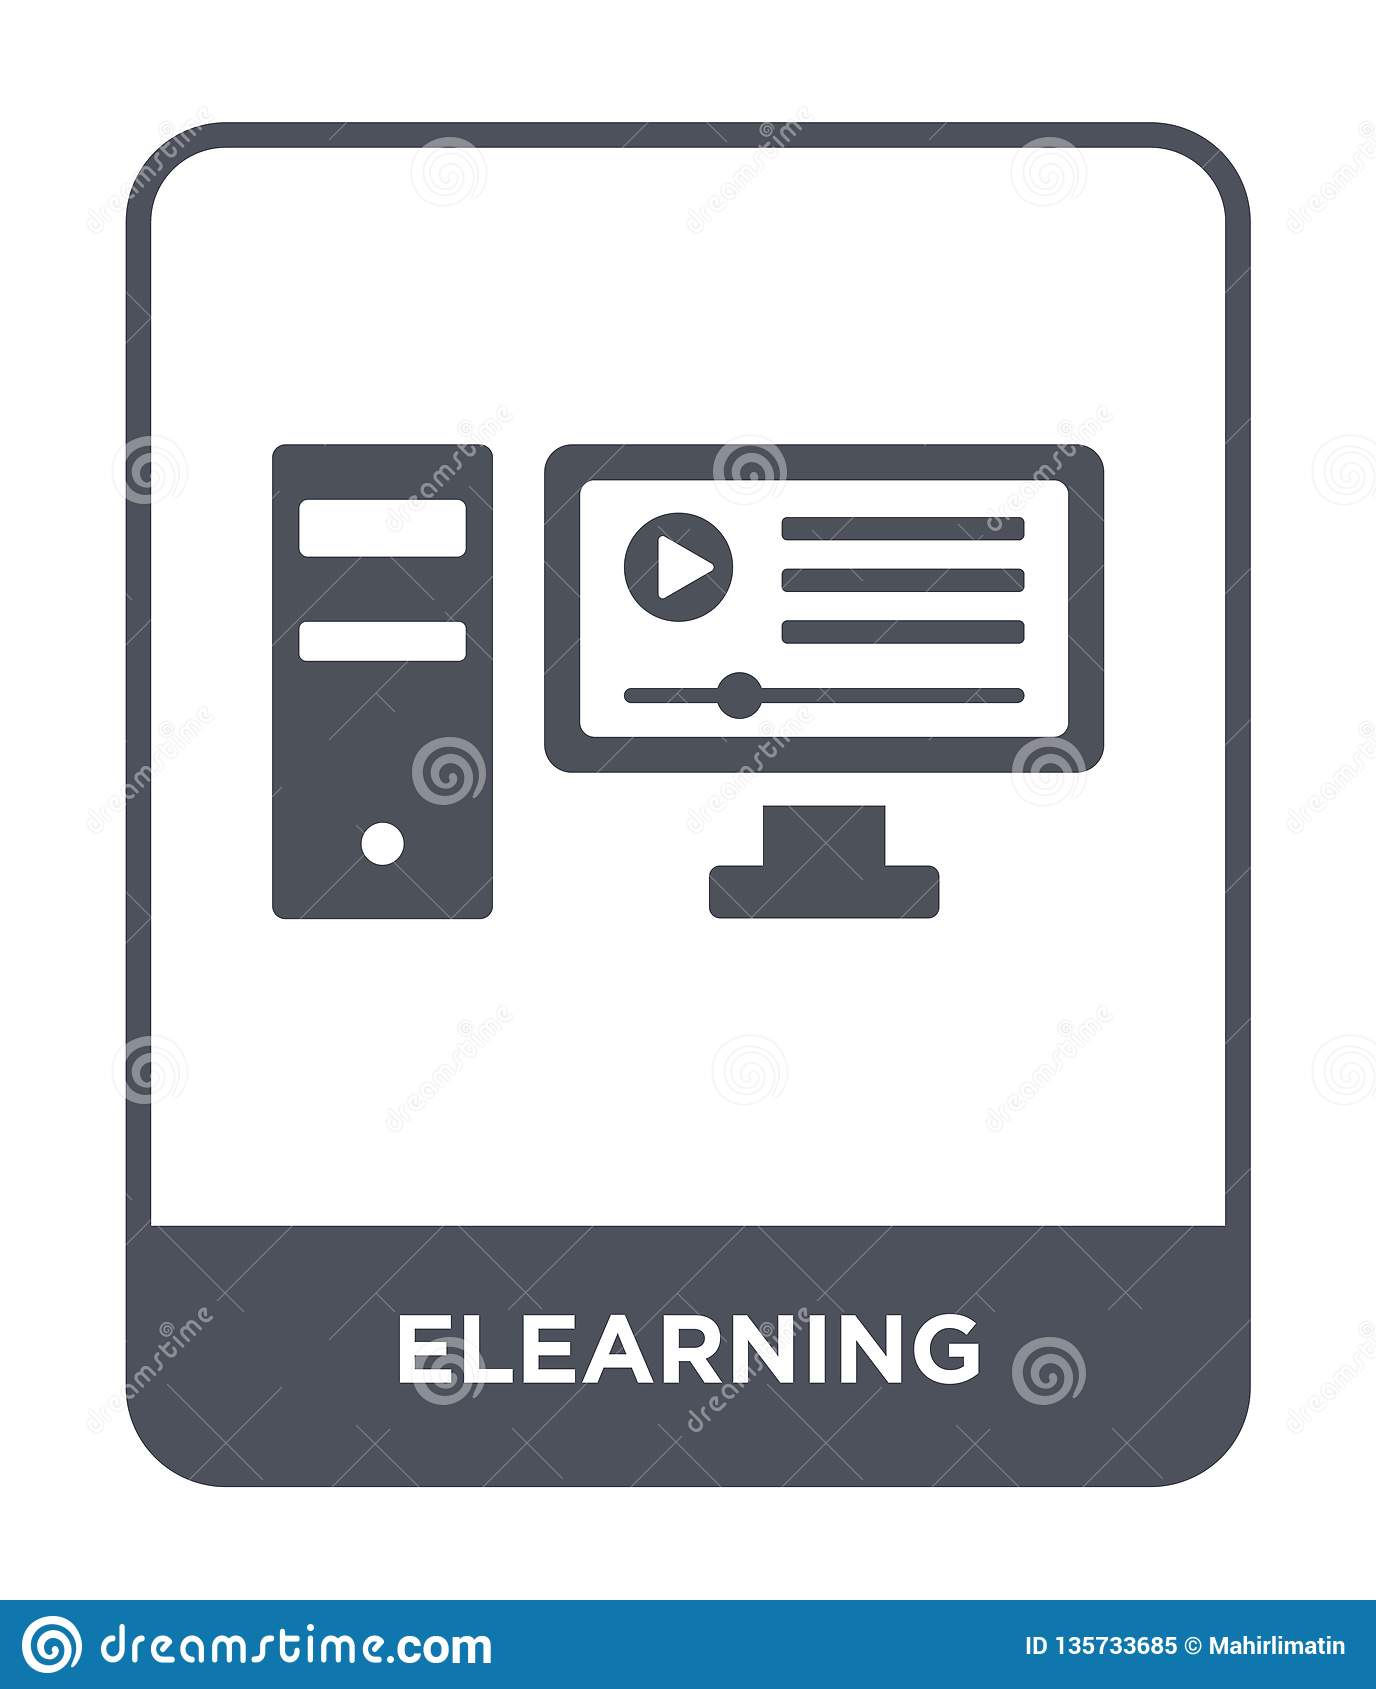 elearning icon in trendy design style. elearning icon isolated on white background. elearning vector icon simple and modern flat